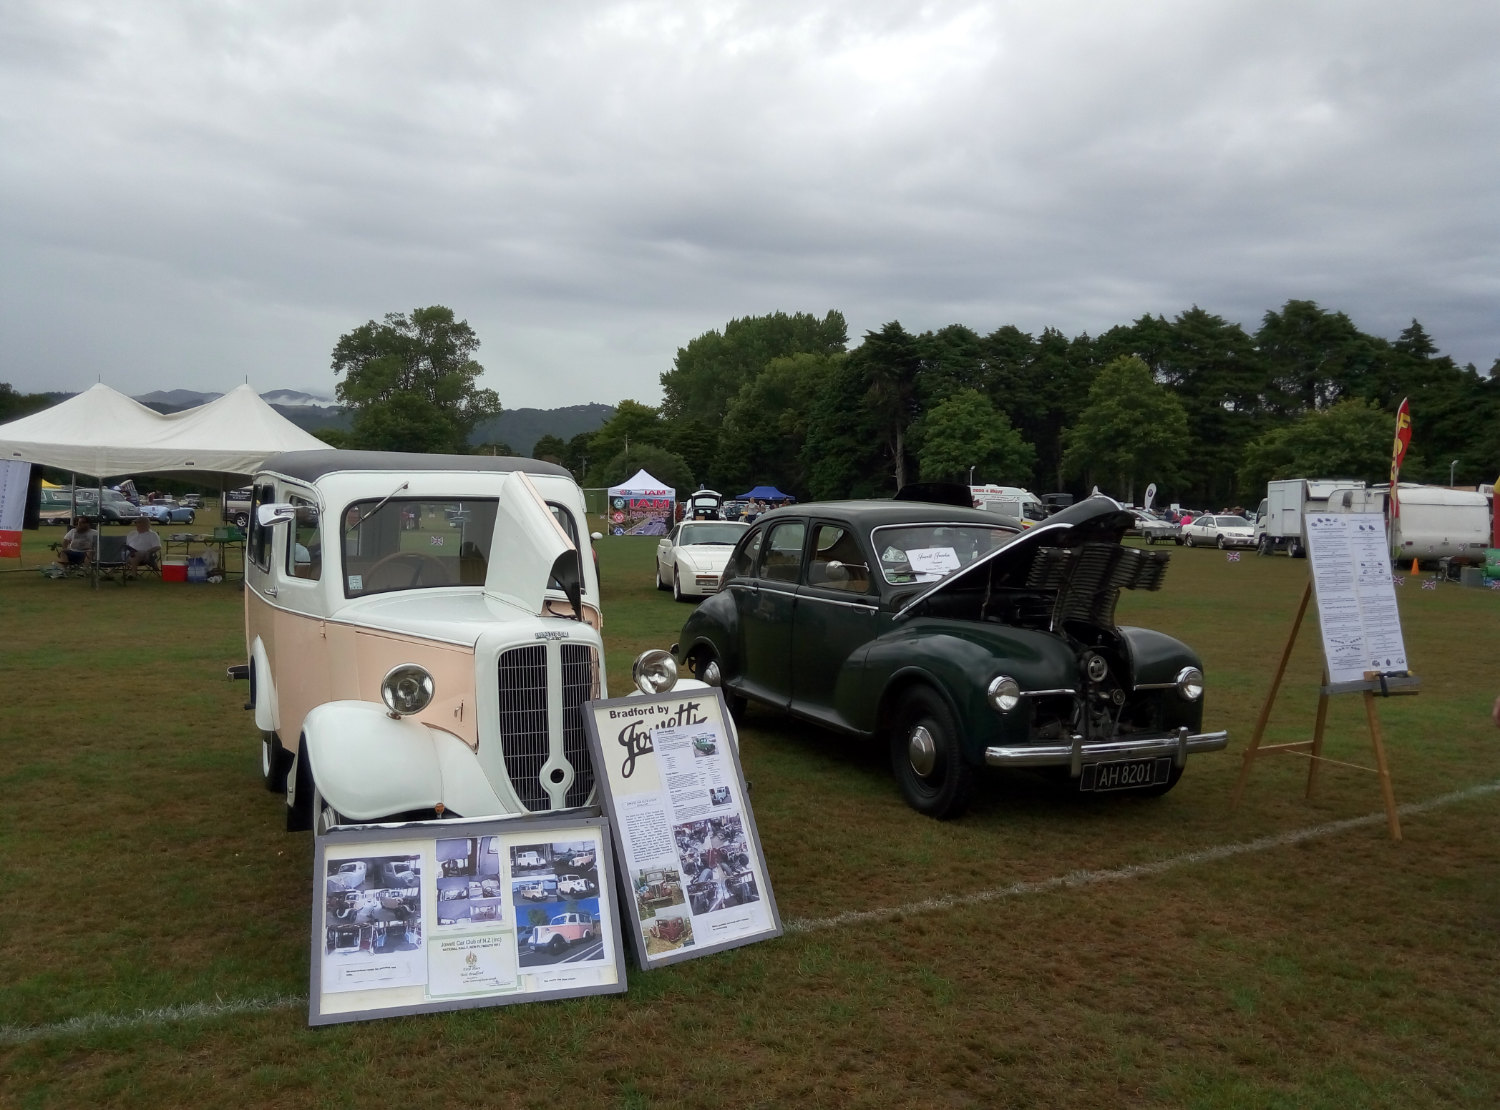 Bradford by Jowett and Jowett Javelin